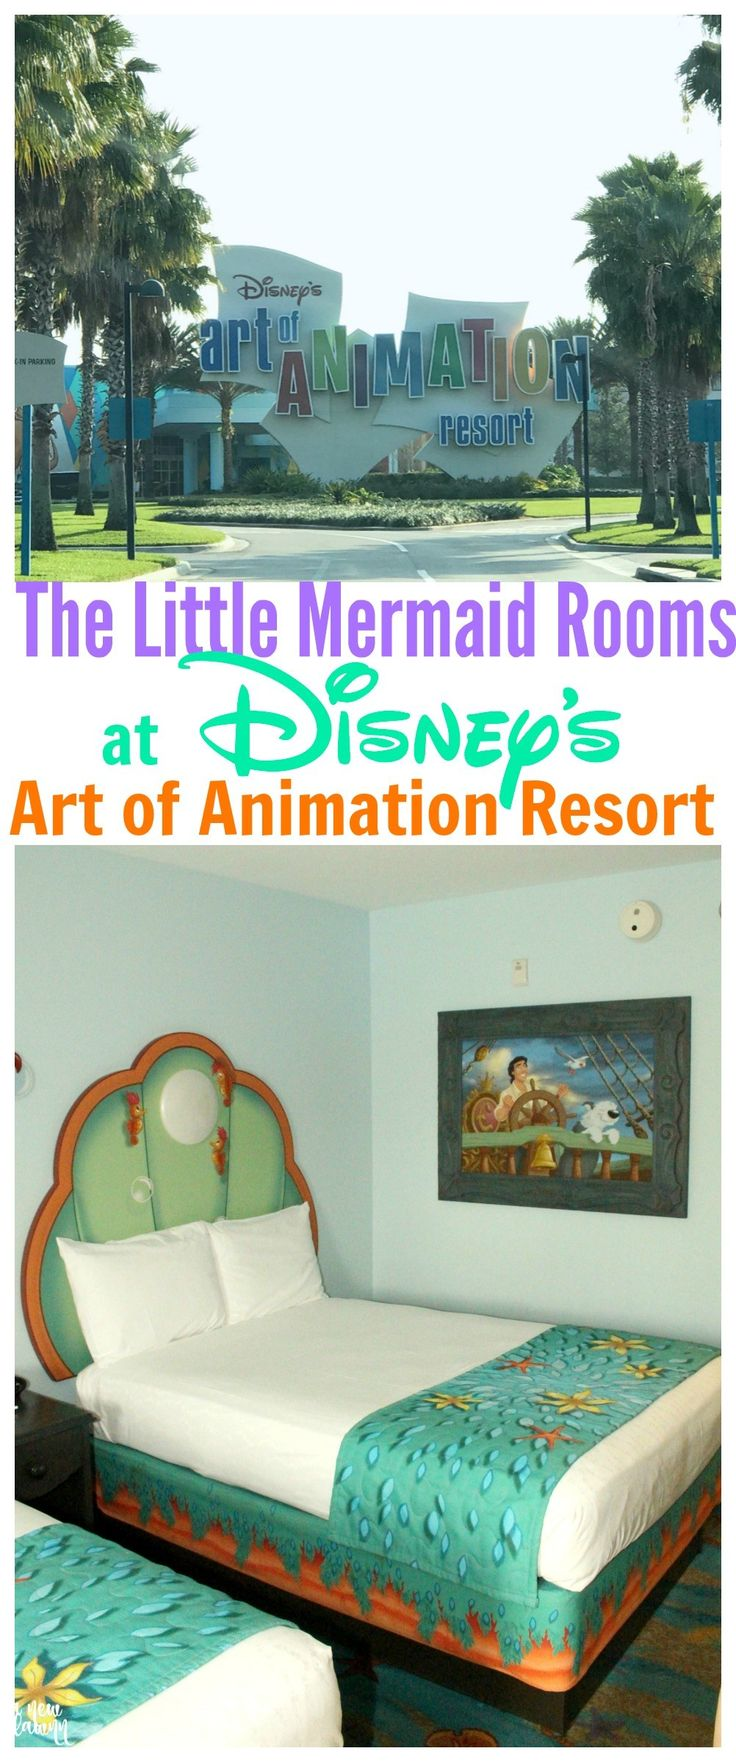 Disney's Art of Animation Resort - The Little Mermaid Rooms